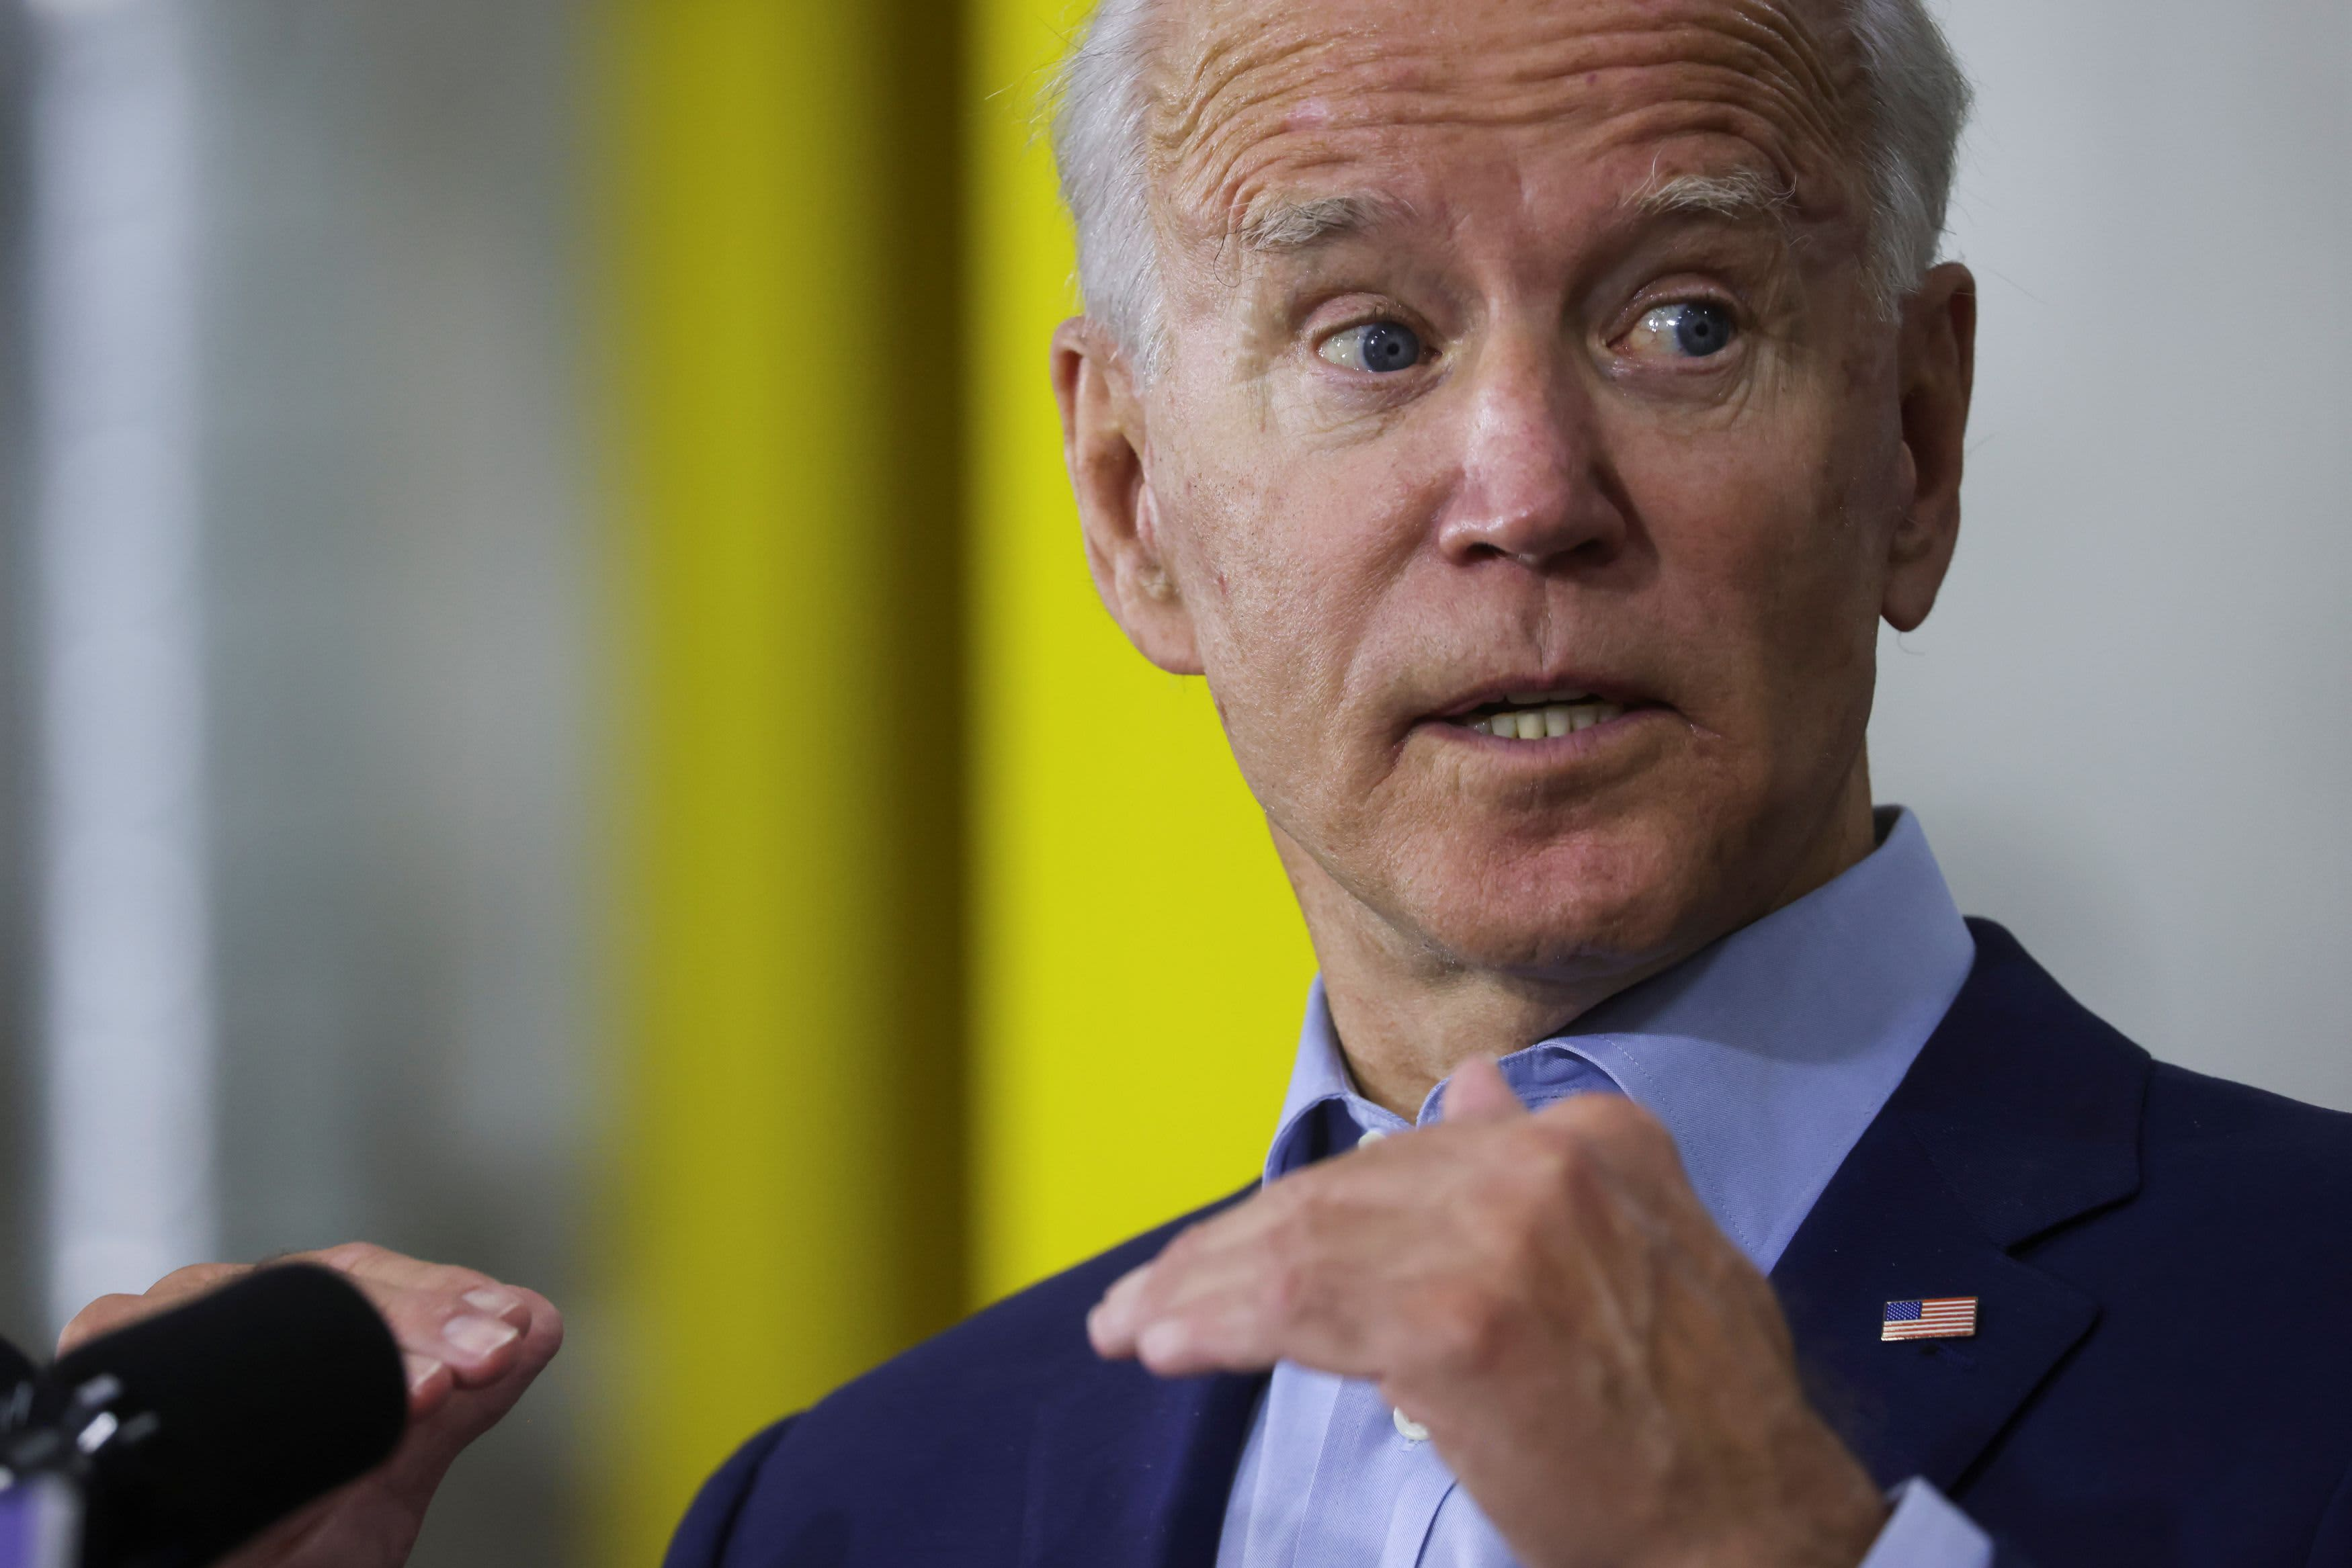 Biden maintains 8 point national lead over Trump after a tumultuous month of news